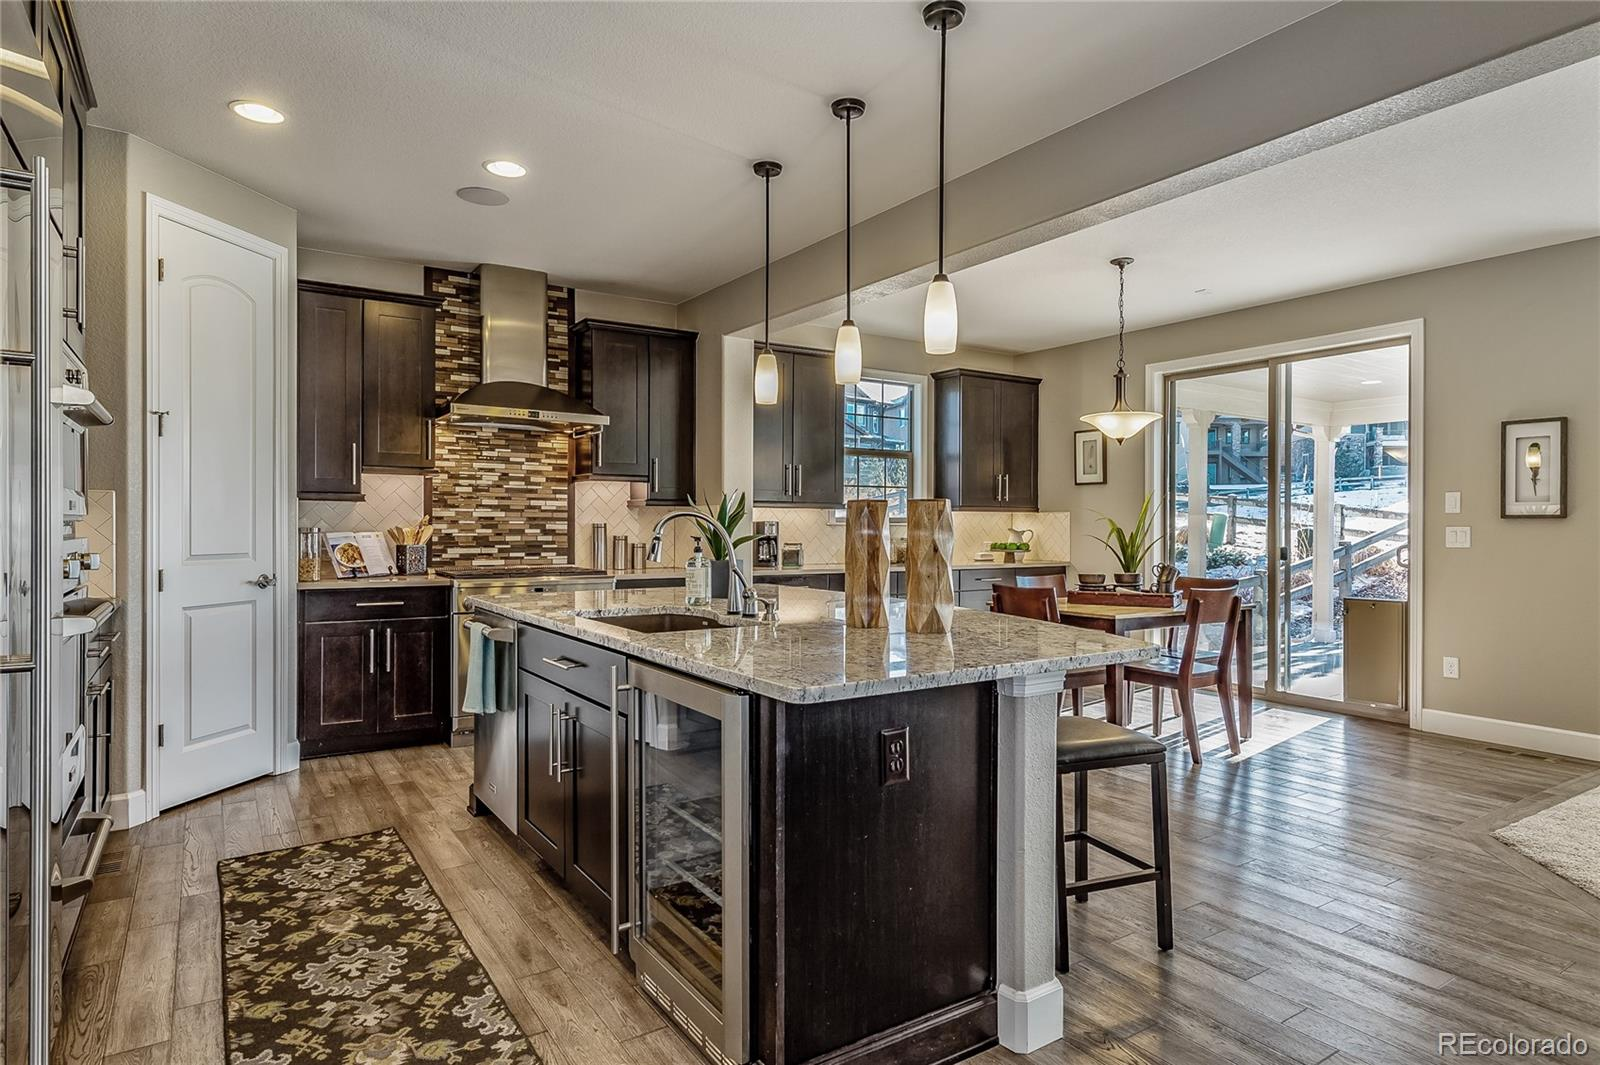 MLS# 3599315 - 6 - 10675 Greycliffe Drive, Highlands Ranch, CO 80126